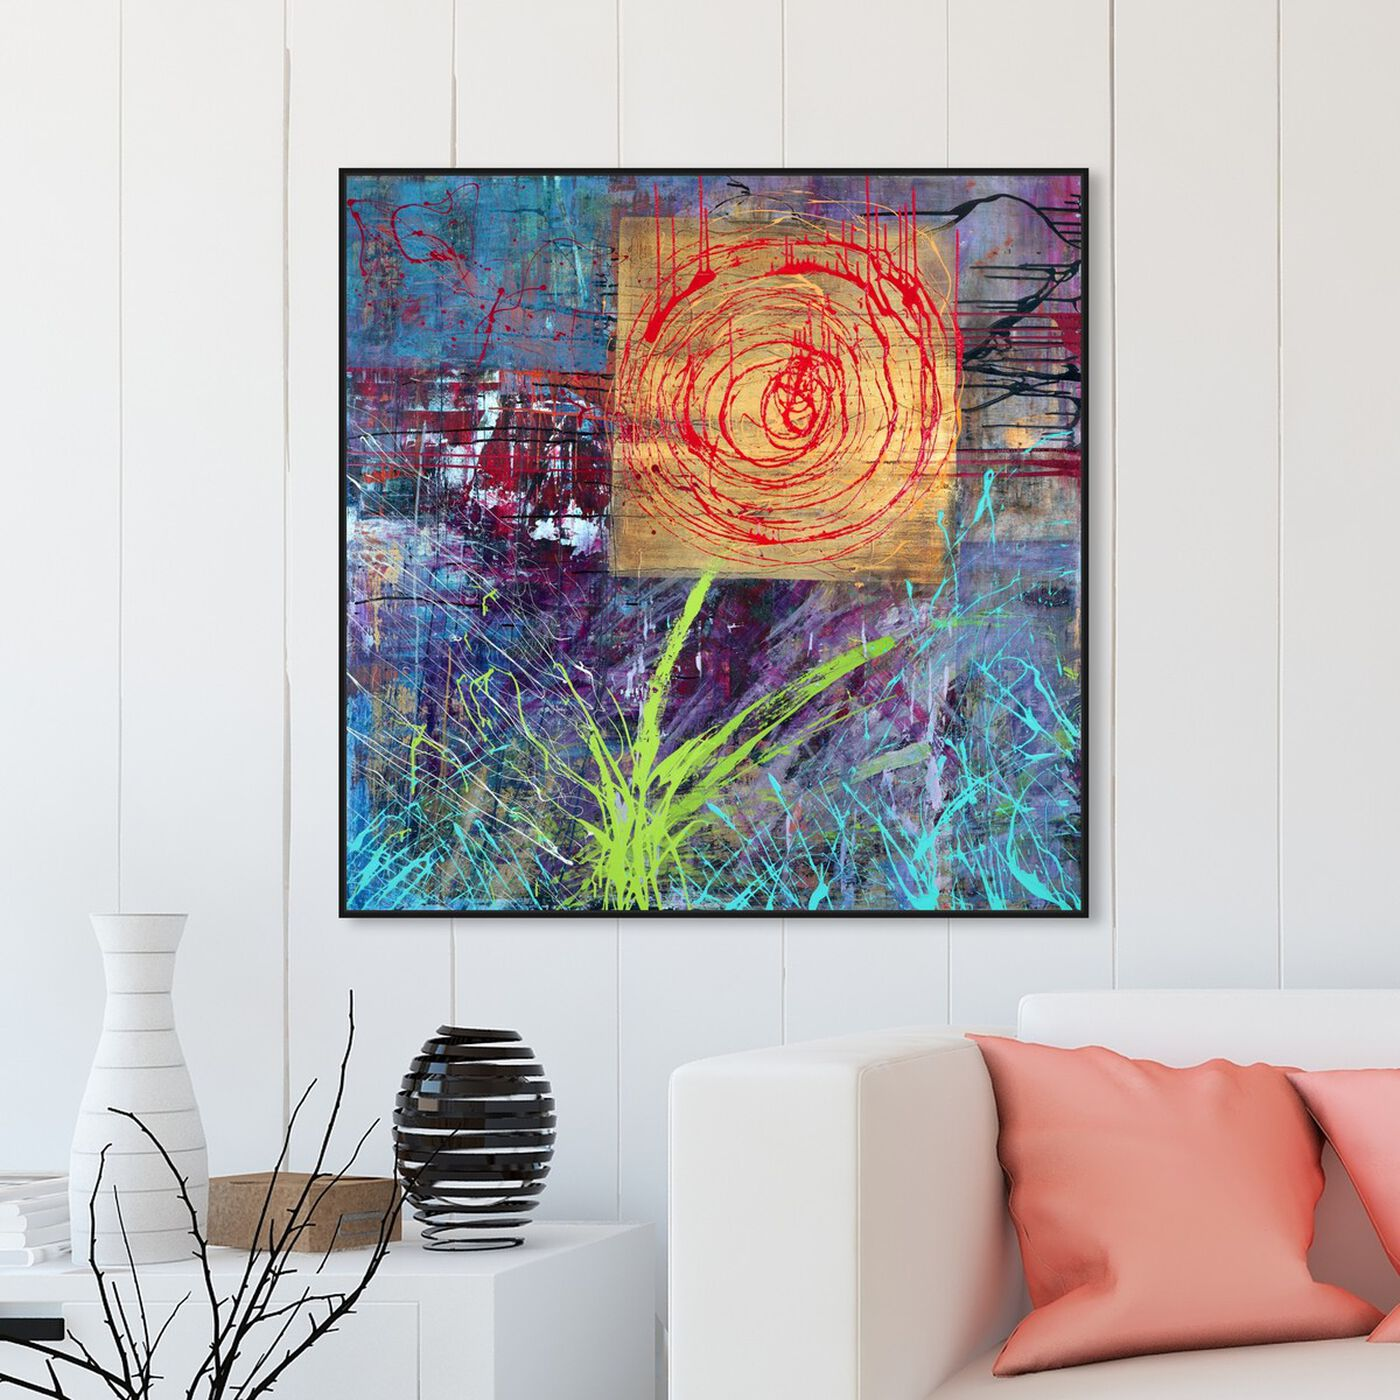 Hanging view of Sai - Urban Blossom 1IC1323 featuring abstract and flowers art.